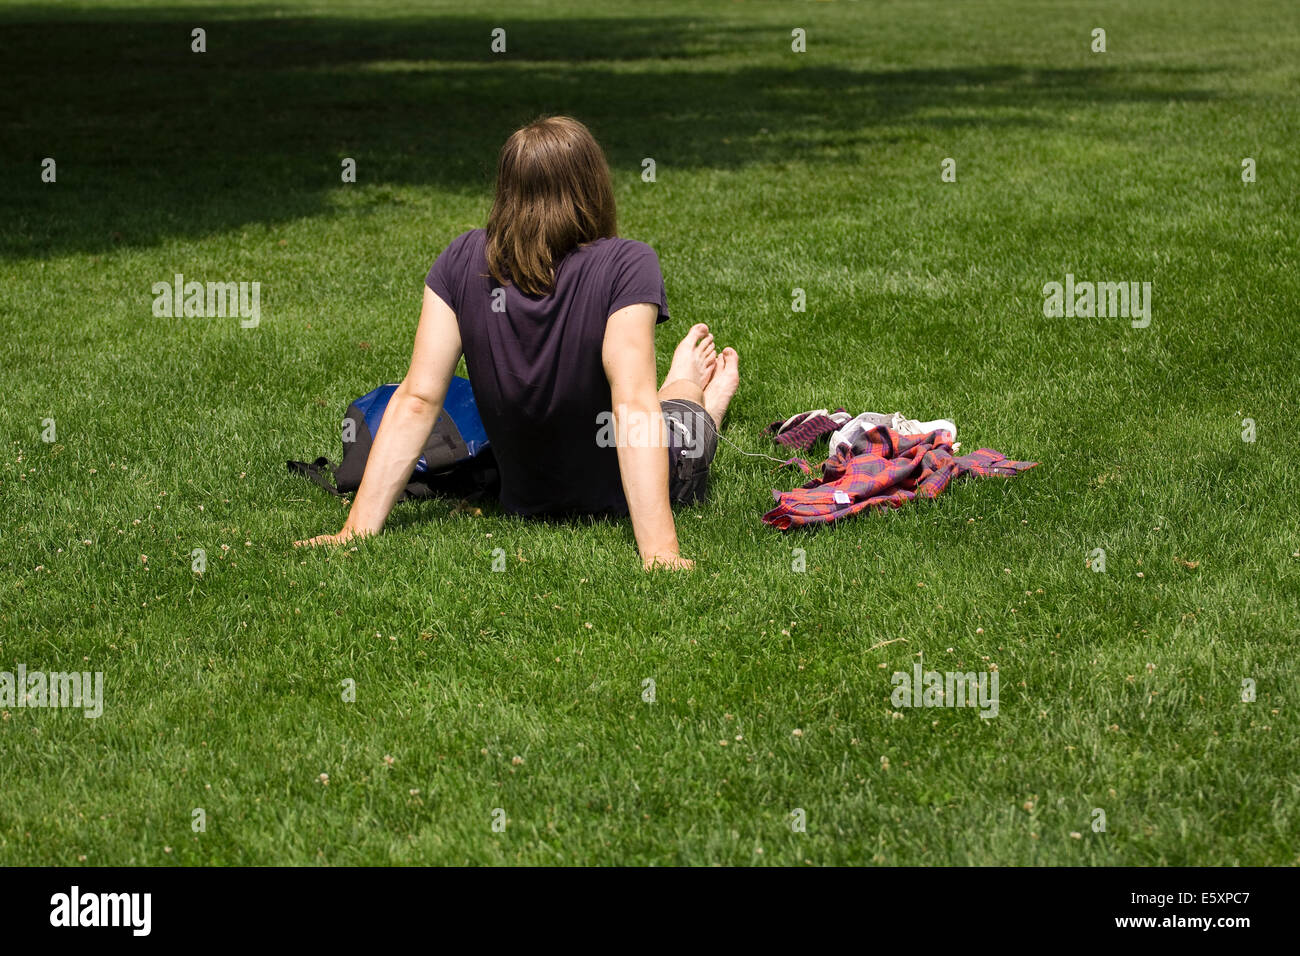 A man with long hair lies in green grass wearing a blue short sleeved shirt on a sunny day - Stock Image